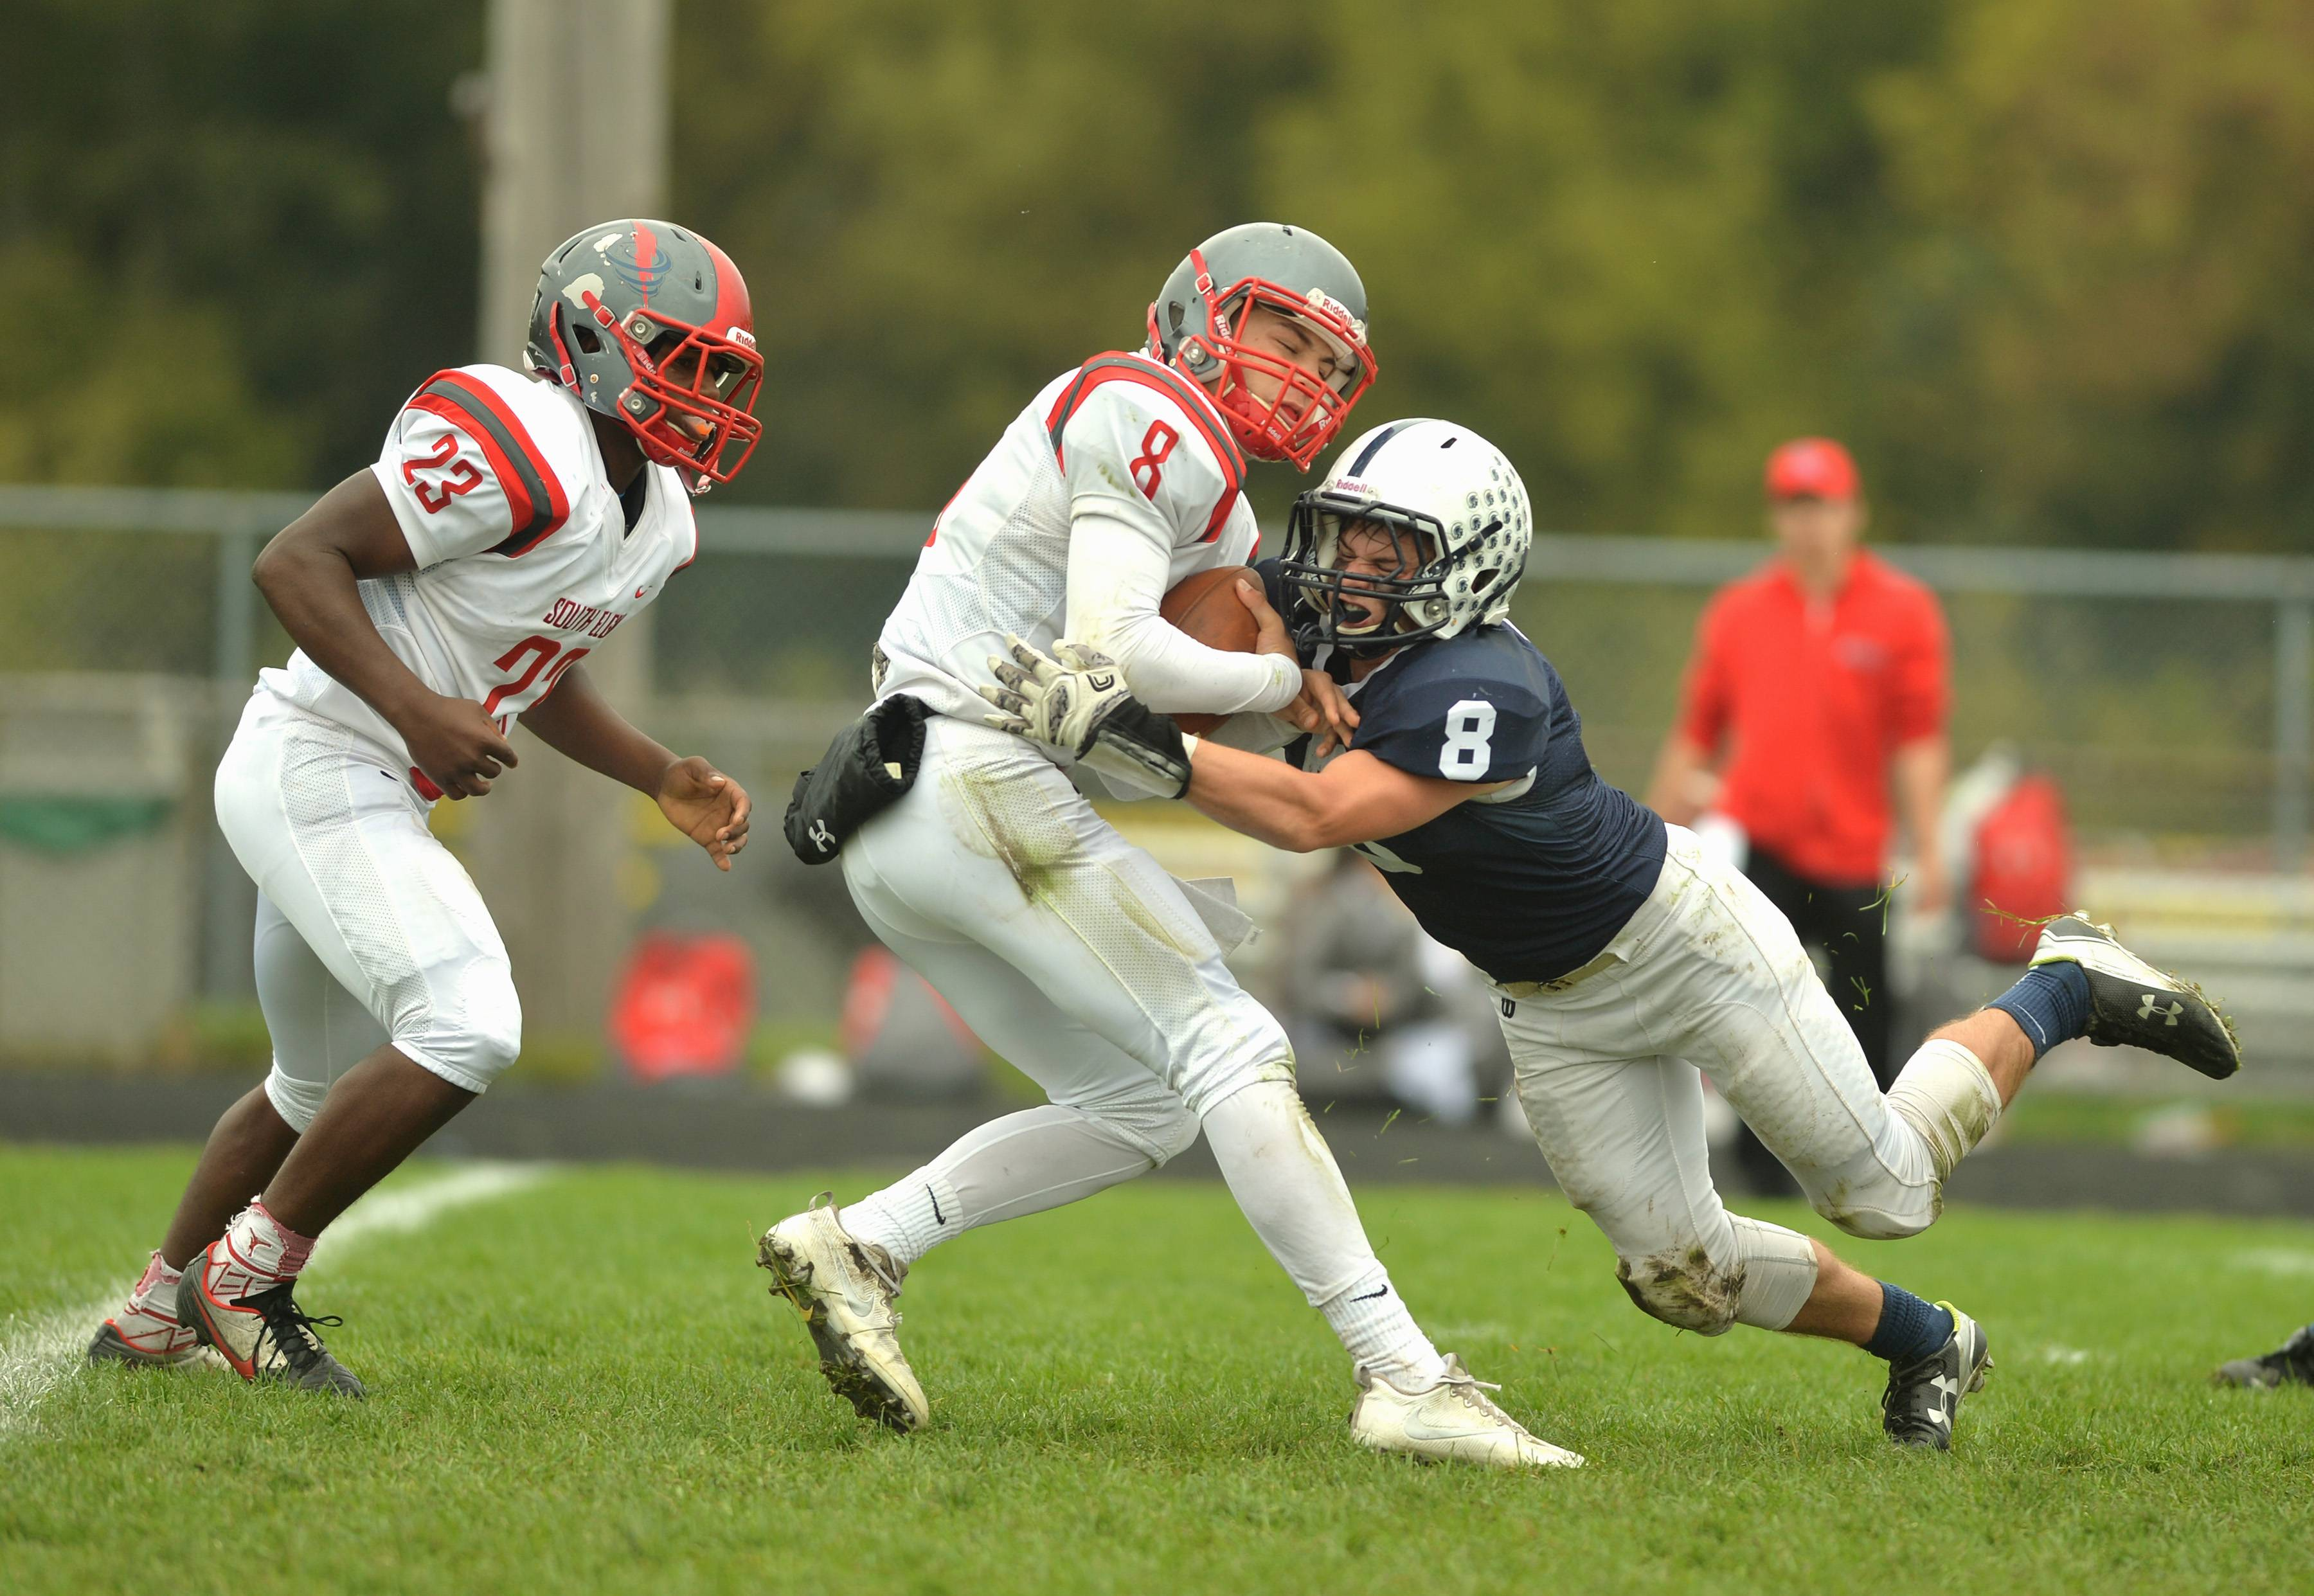 Cary-Grove defensive back Collin Walsh sacks South Elgin quarterback Nate Gomez in the first quarter Saturday in Cary. Gomez was knocked out of the game on the play.